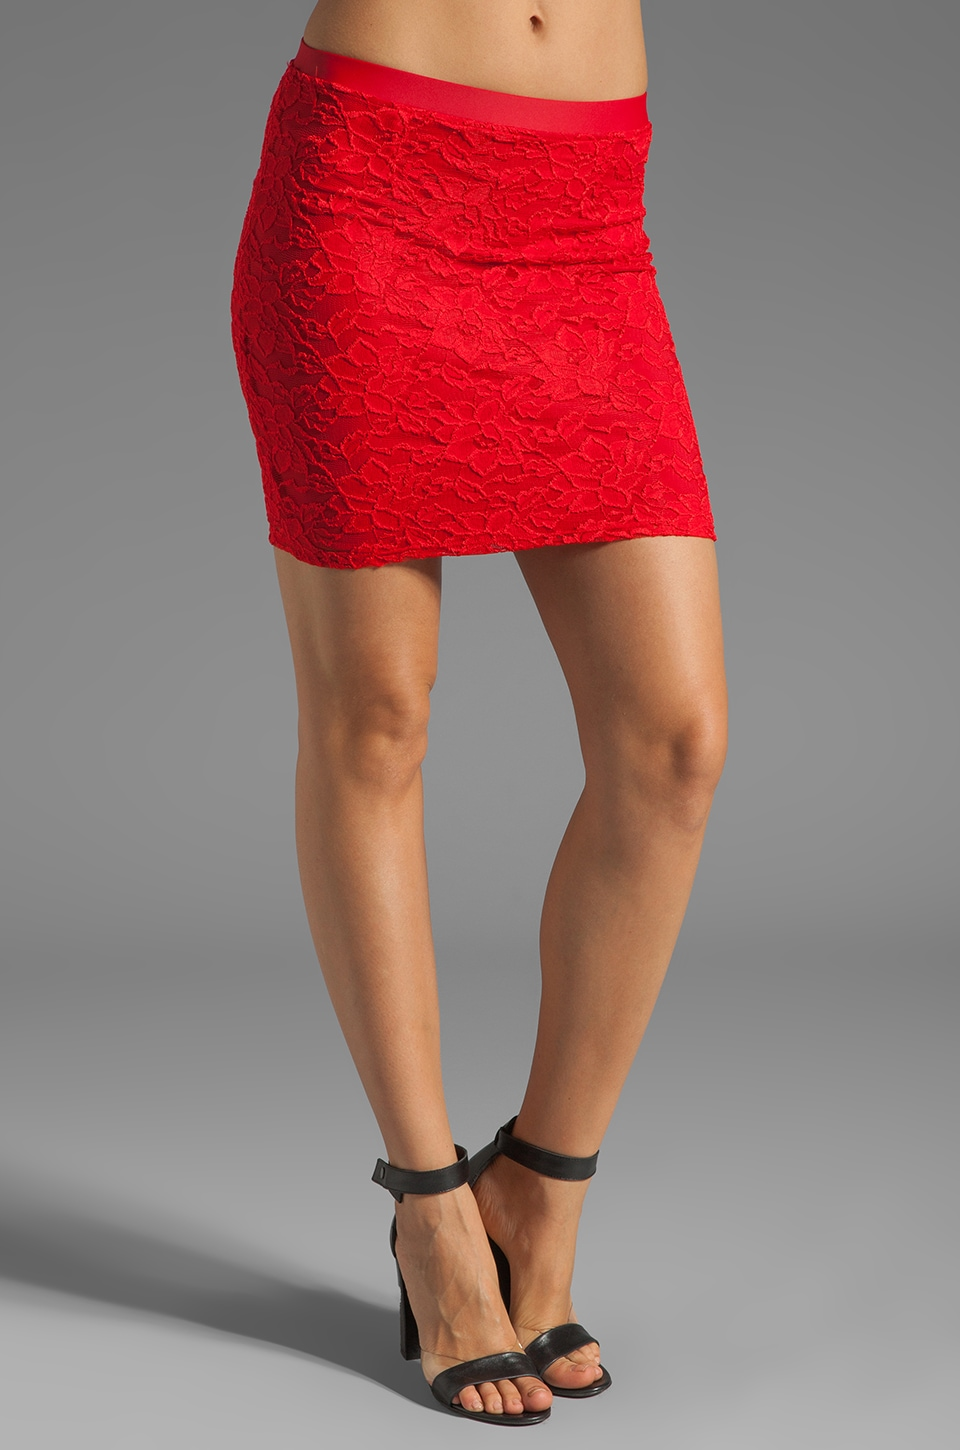 Donna Mizani Passion Lace Skirt in Red